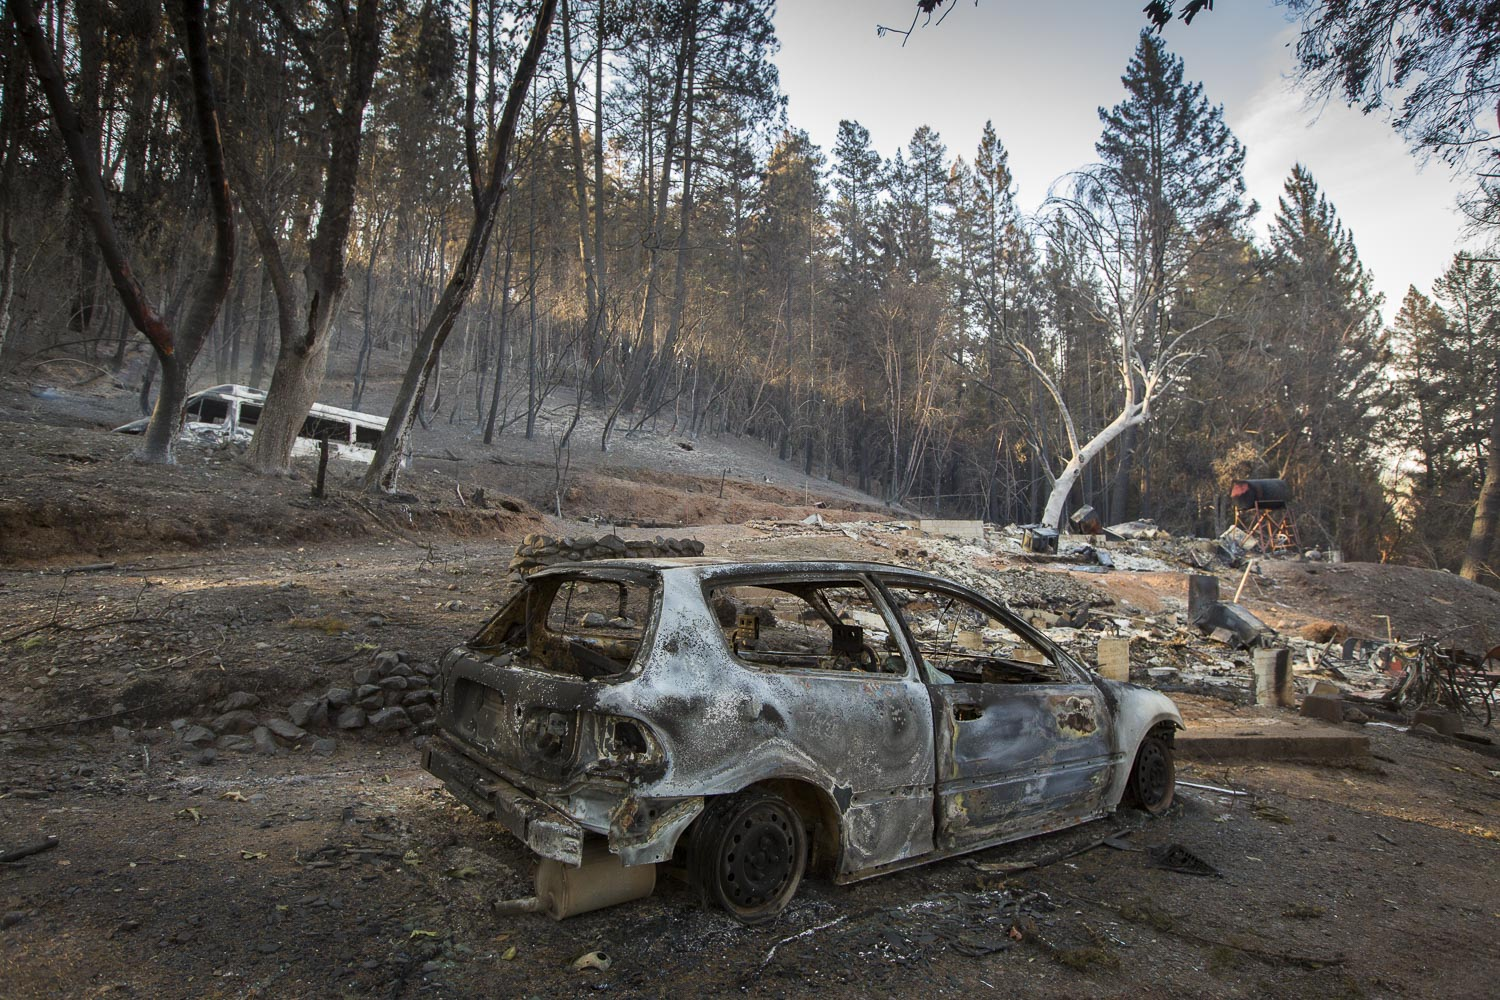 The Monroe family property destroyed by wildfire in a secluded neighborhood off Tomki Road Oct. 15, 2017 in Redwood Valley, CA.